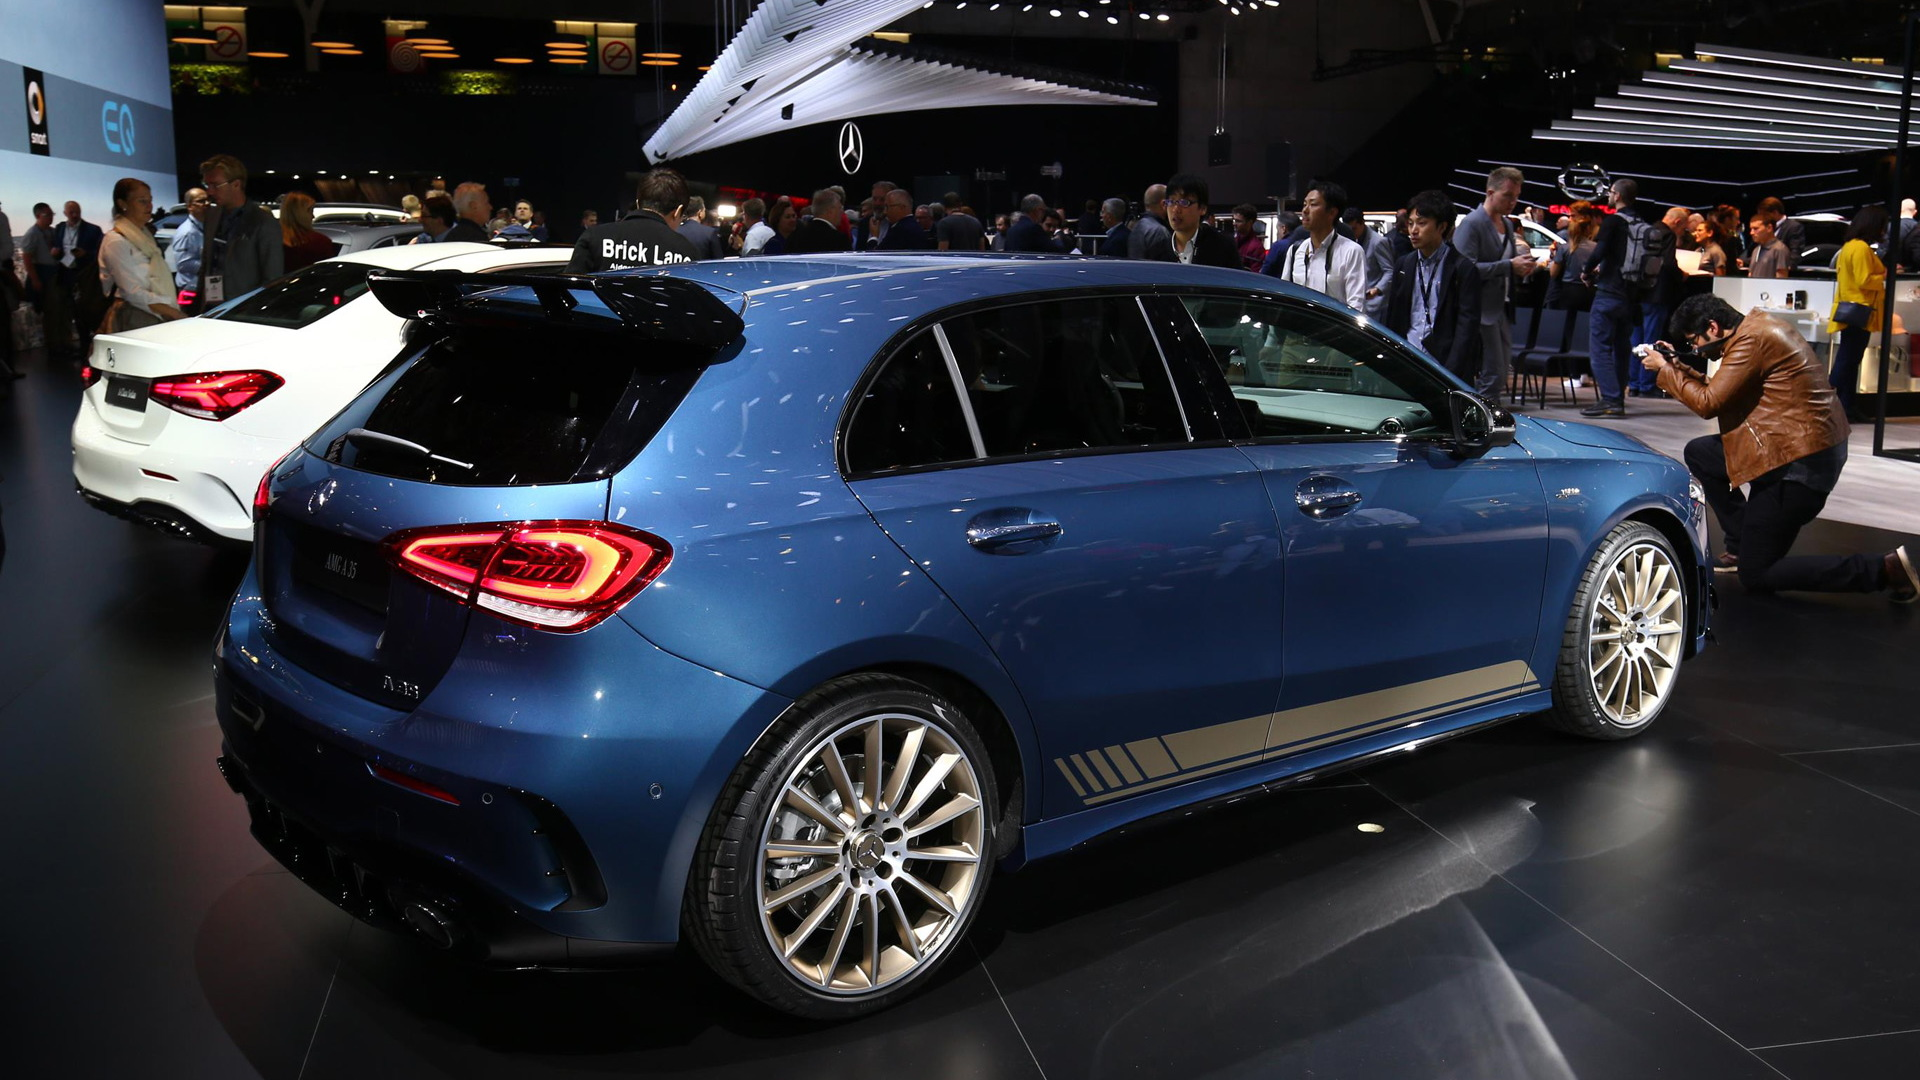 2019 mercedes amg a35 hot hatch revealed with 302 horsepower. Black Bedroom Furniture Sets. Home Design Ideas